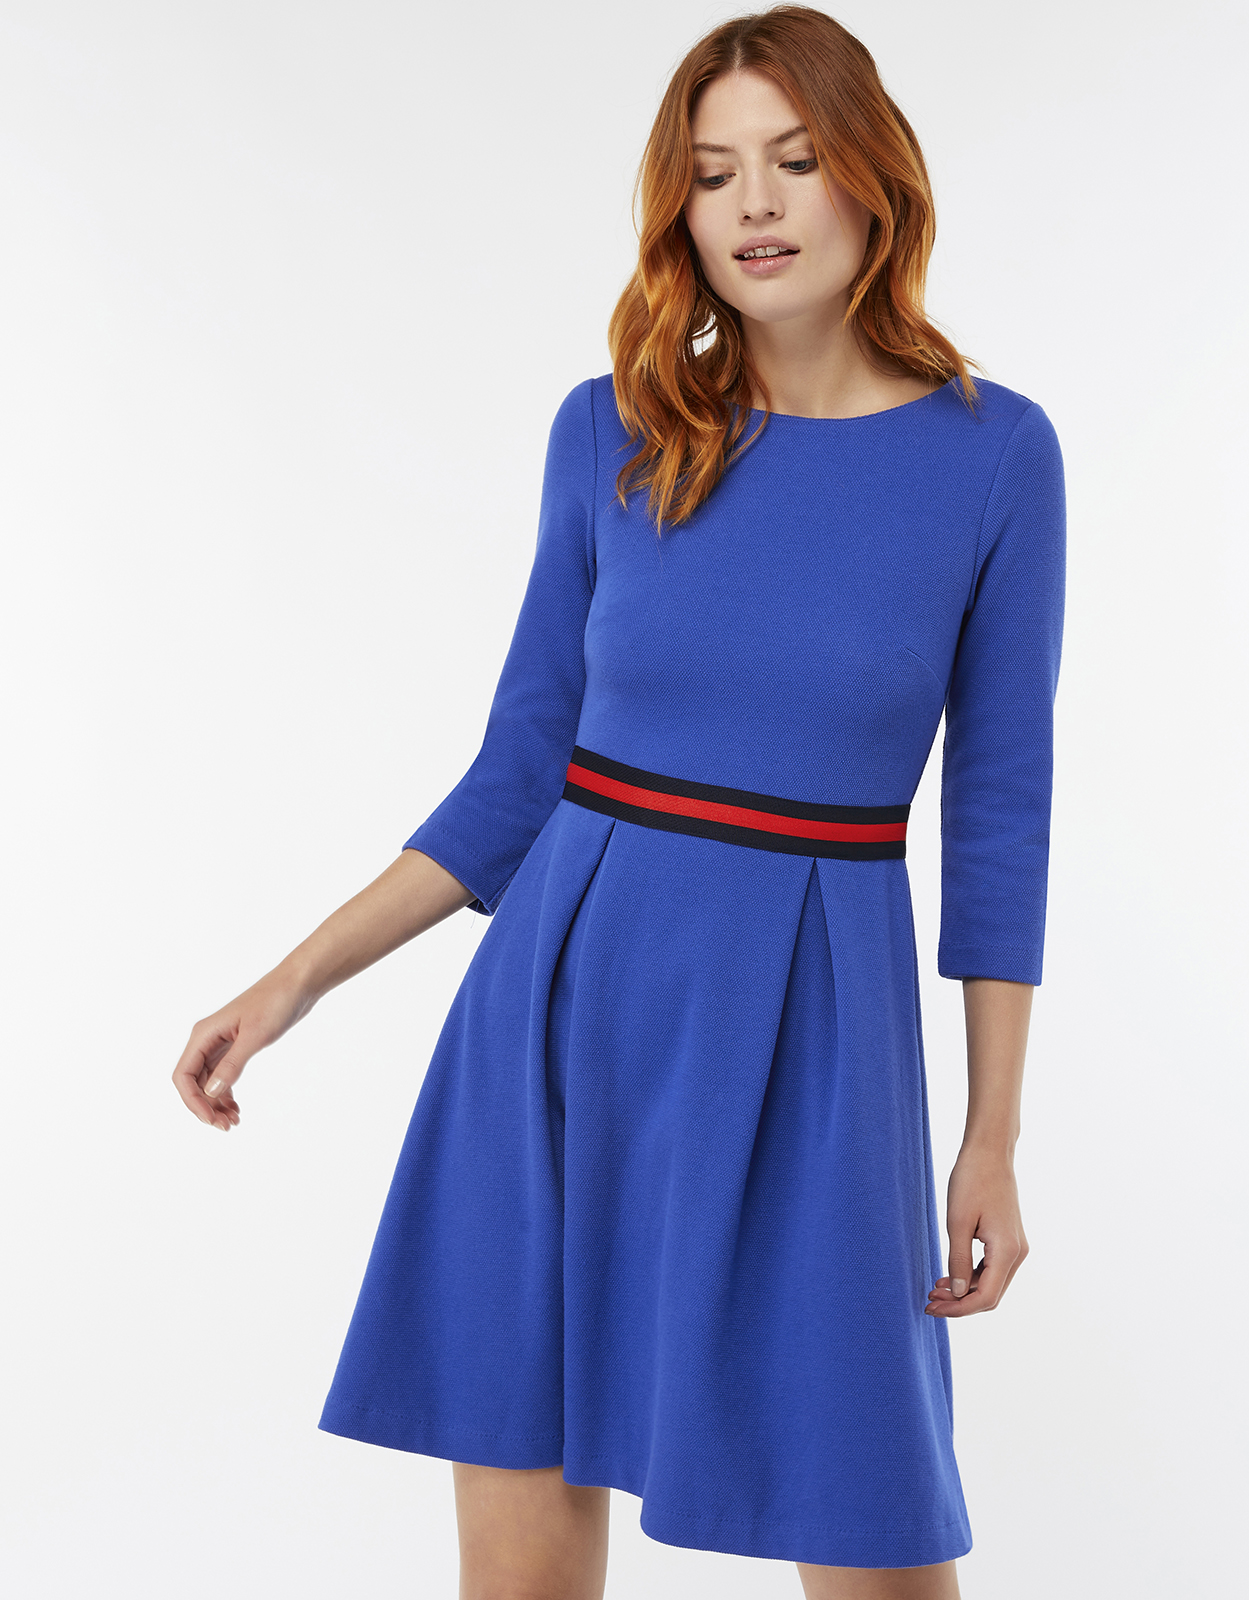 Monsoon Bea Textured Fit & Flare Dress